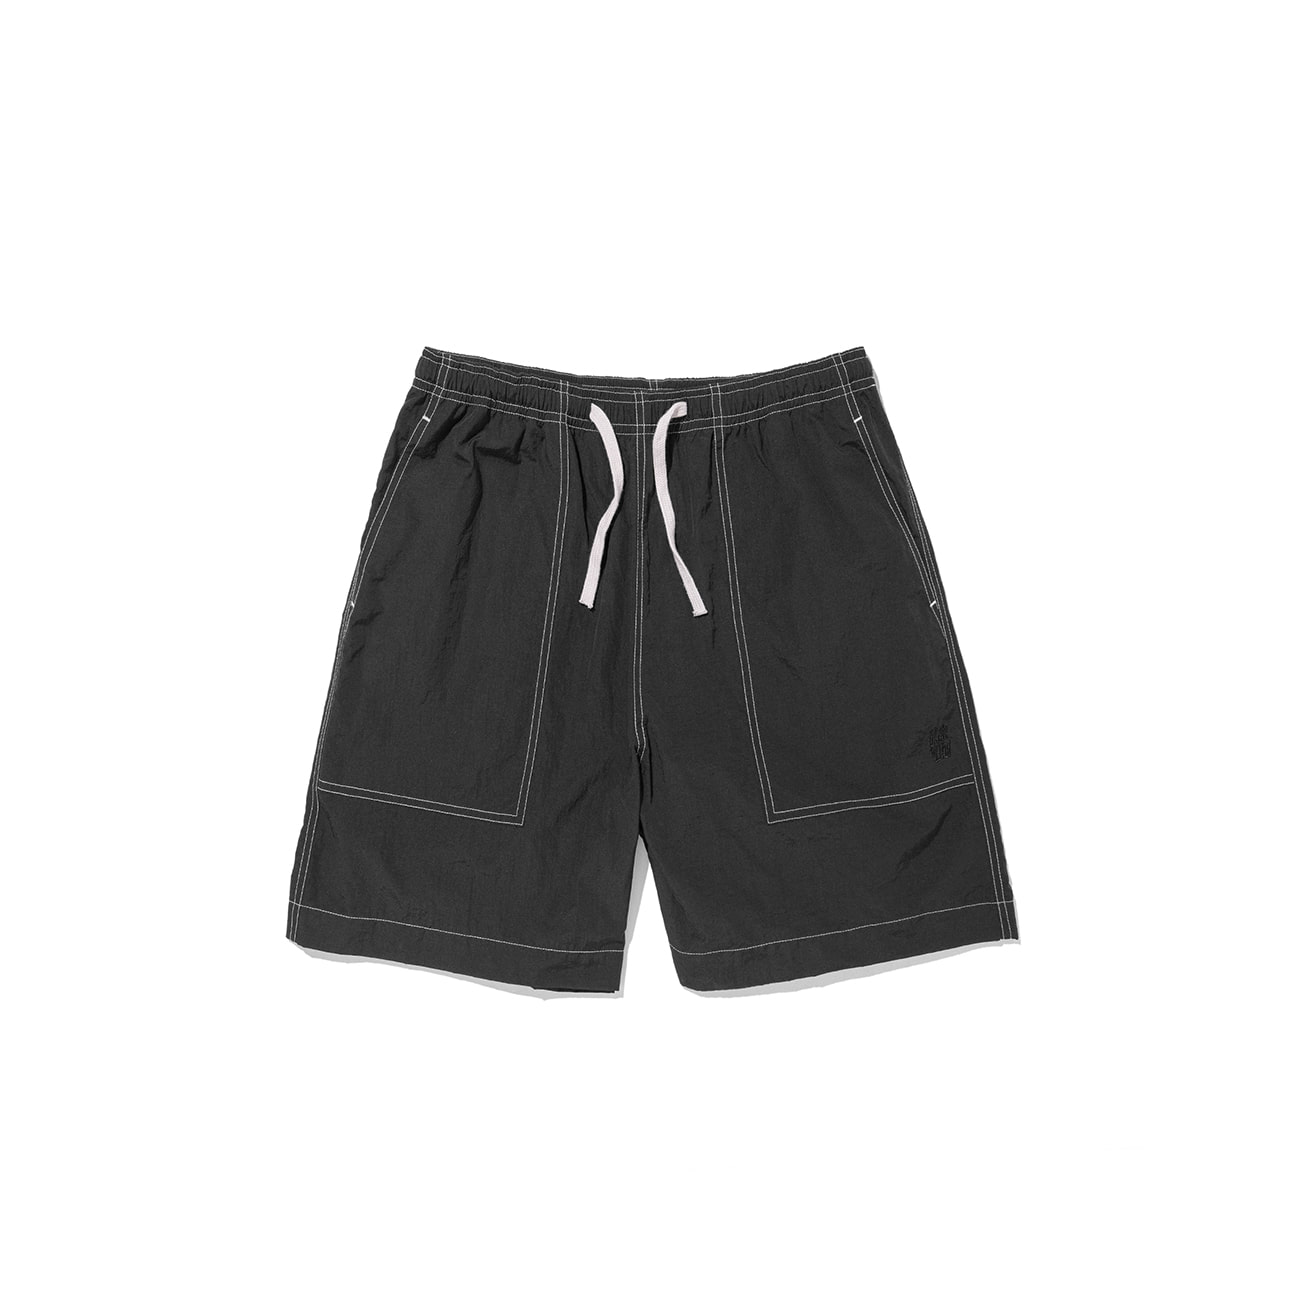 M.Nii x LIFUL Fatigue Shorts